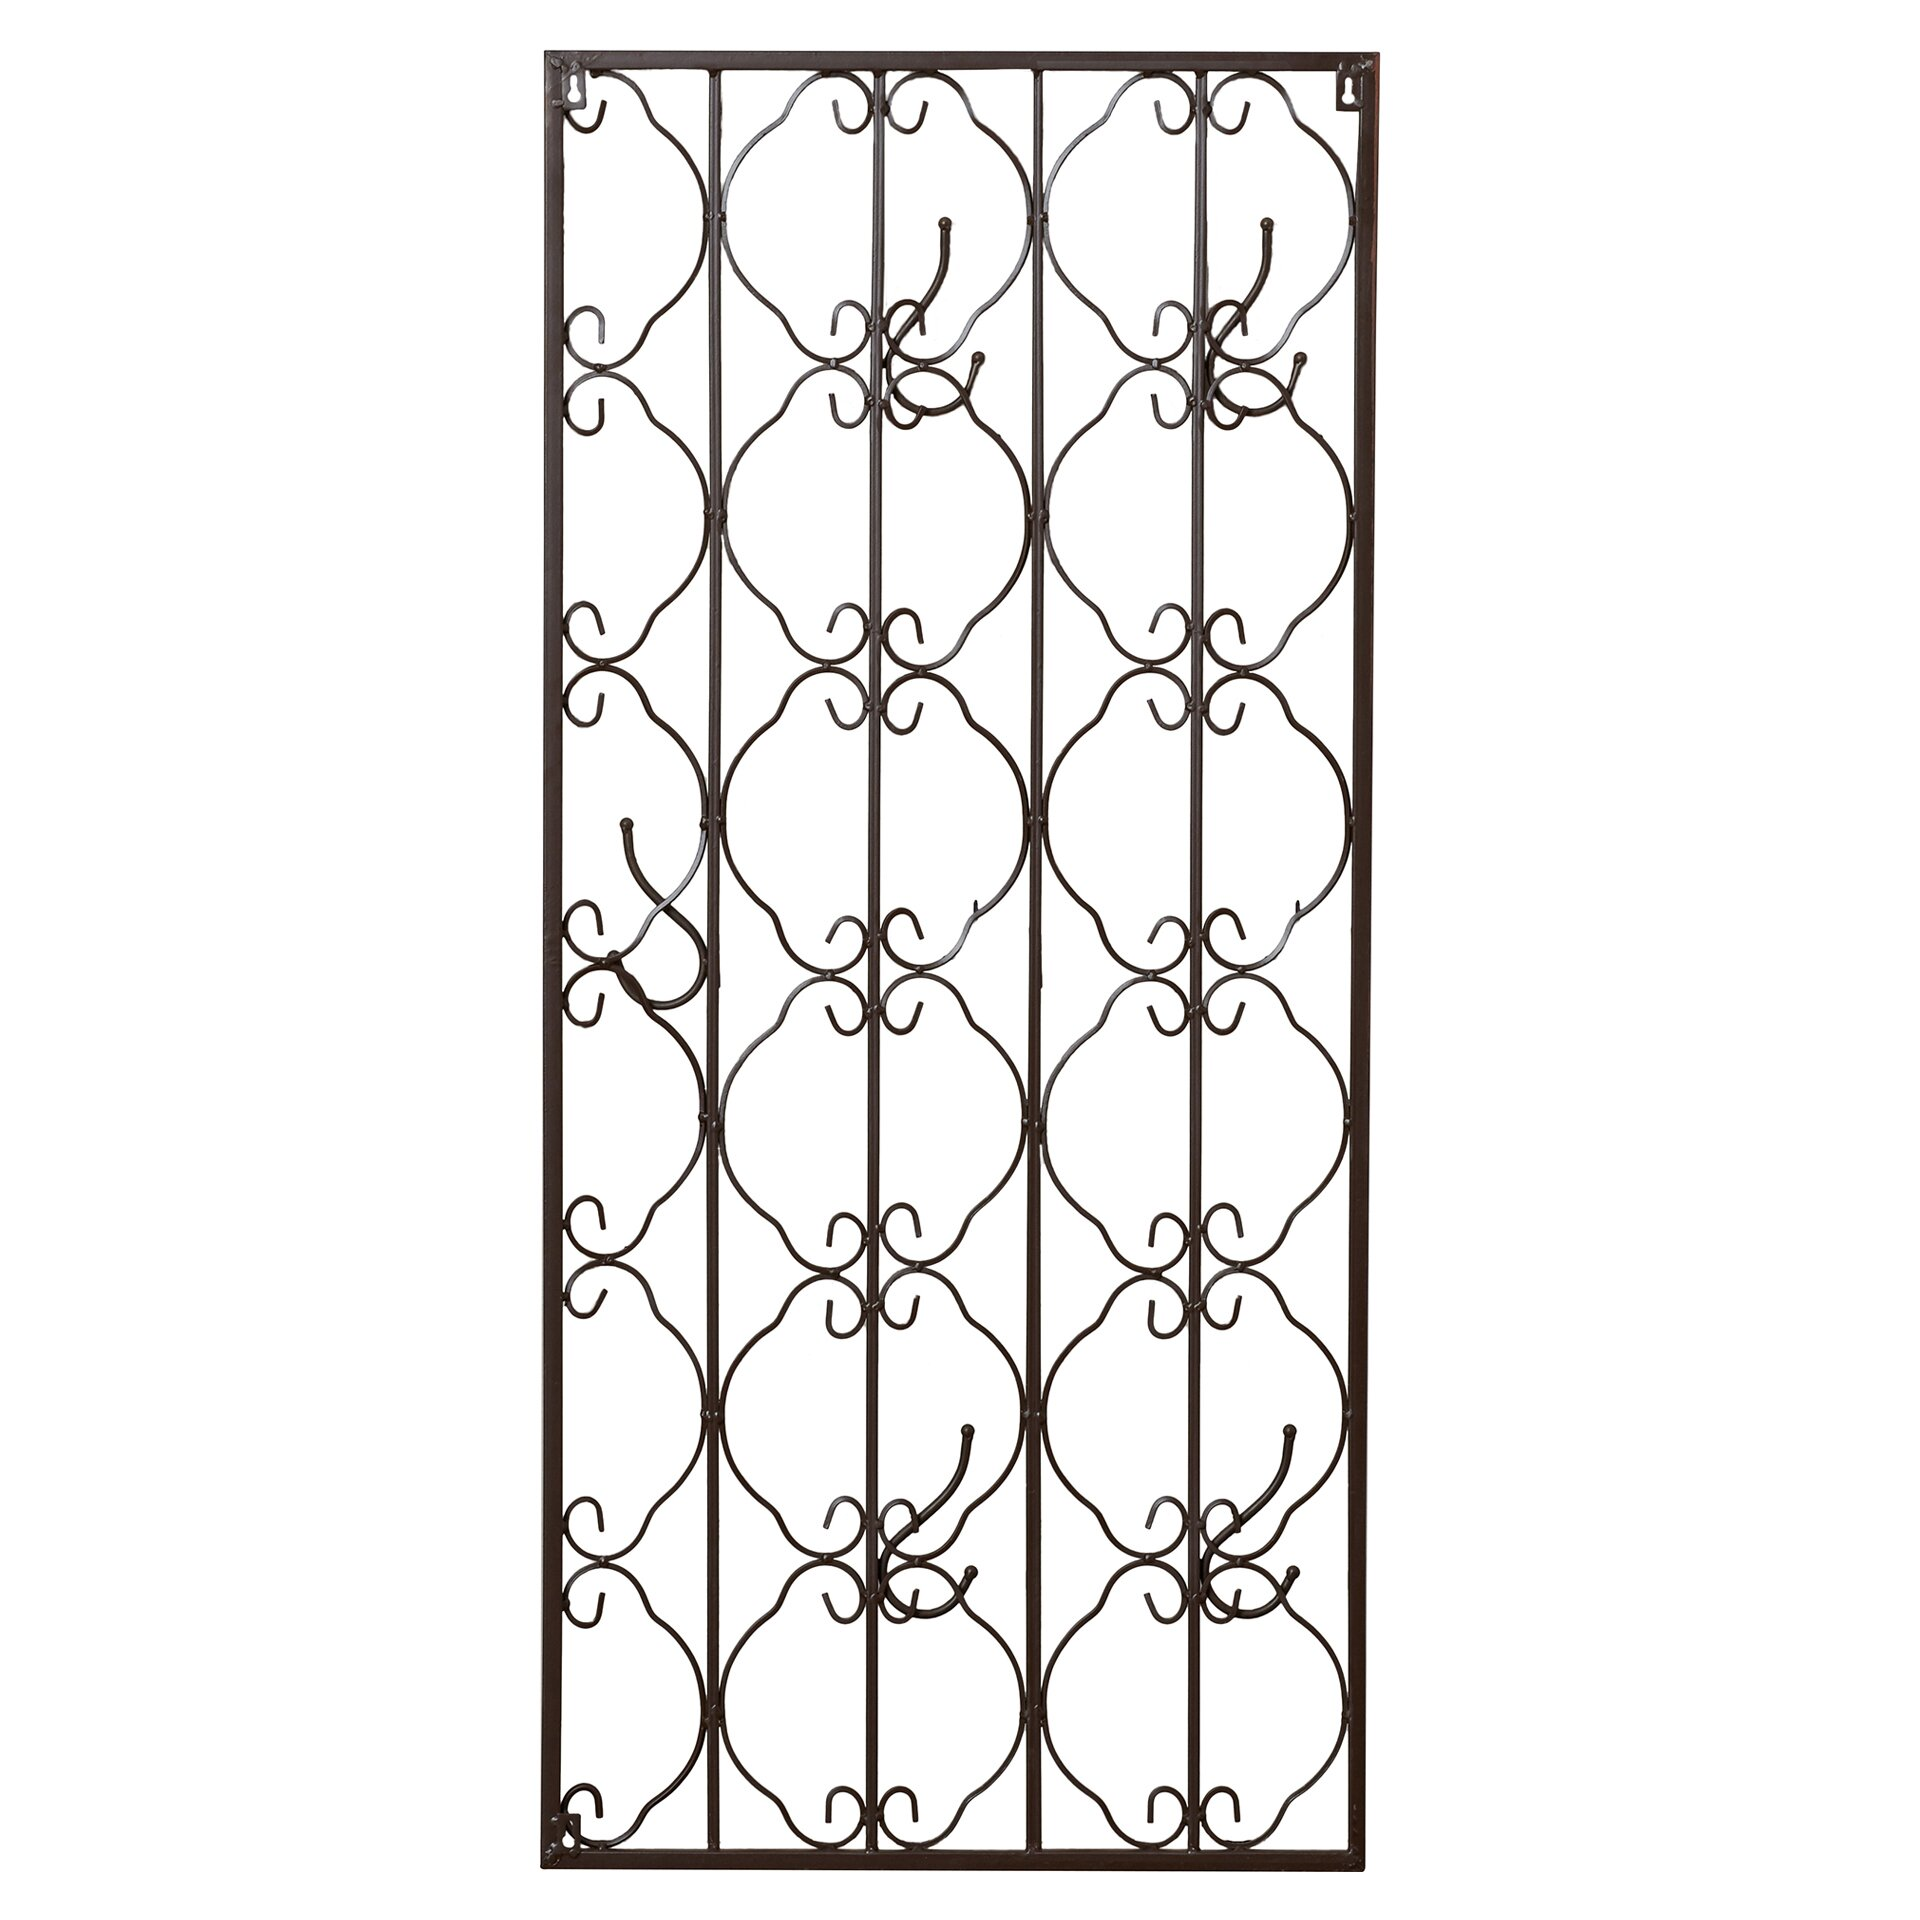 Metal Wall Hook THRE2818 THRE2818 in addition Floor plan furthermore Uttermost Quillon Glass Coffee Table as well Chicken Wire Home Depot in addition Carriage Light Pendant Selecting Fixture Size Of Exterior Hanging 0d8f043dc79f61ba. on landscape lighting glass